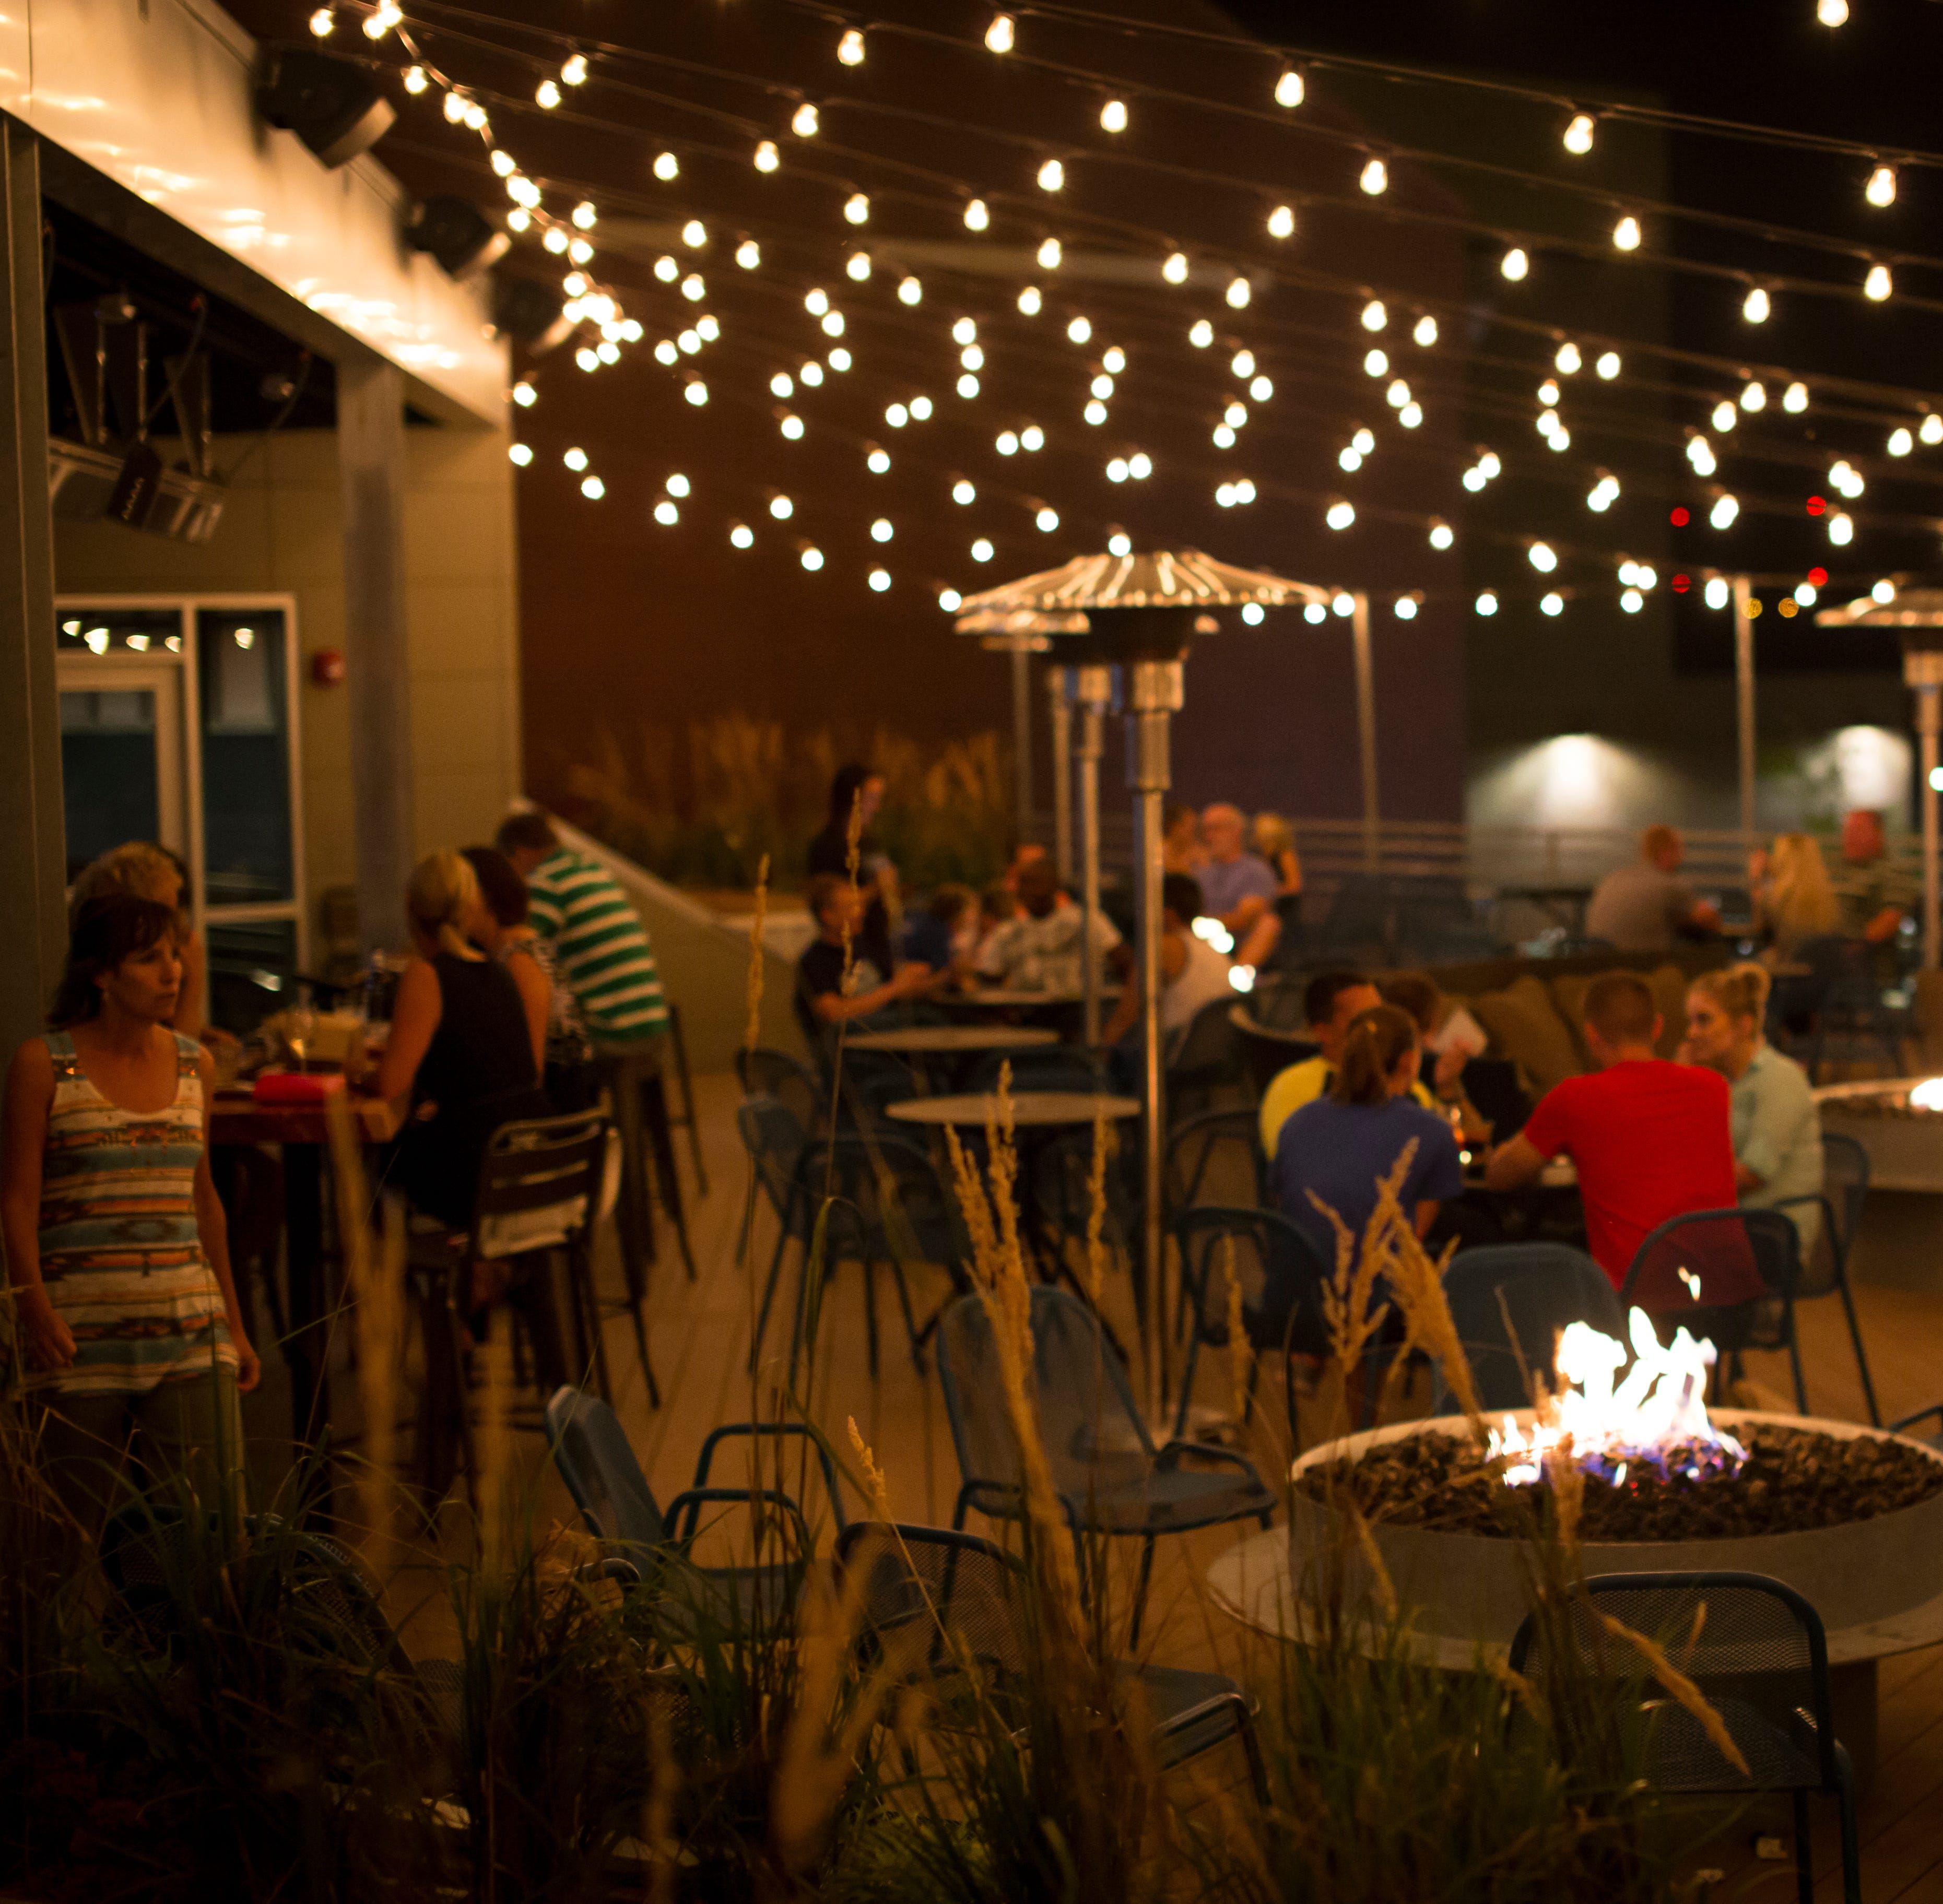 17 places for outdoor eating in Iowa City area